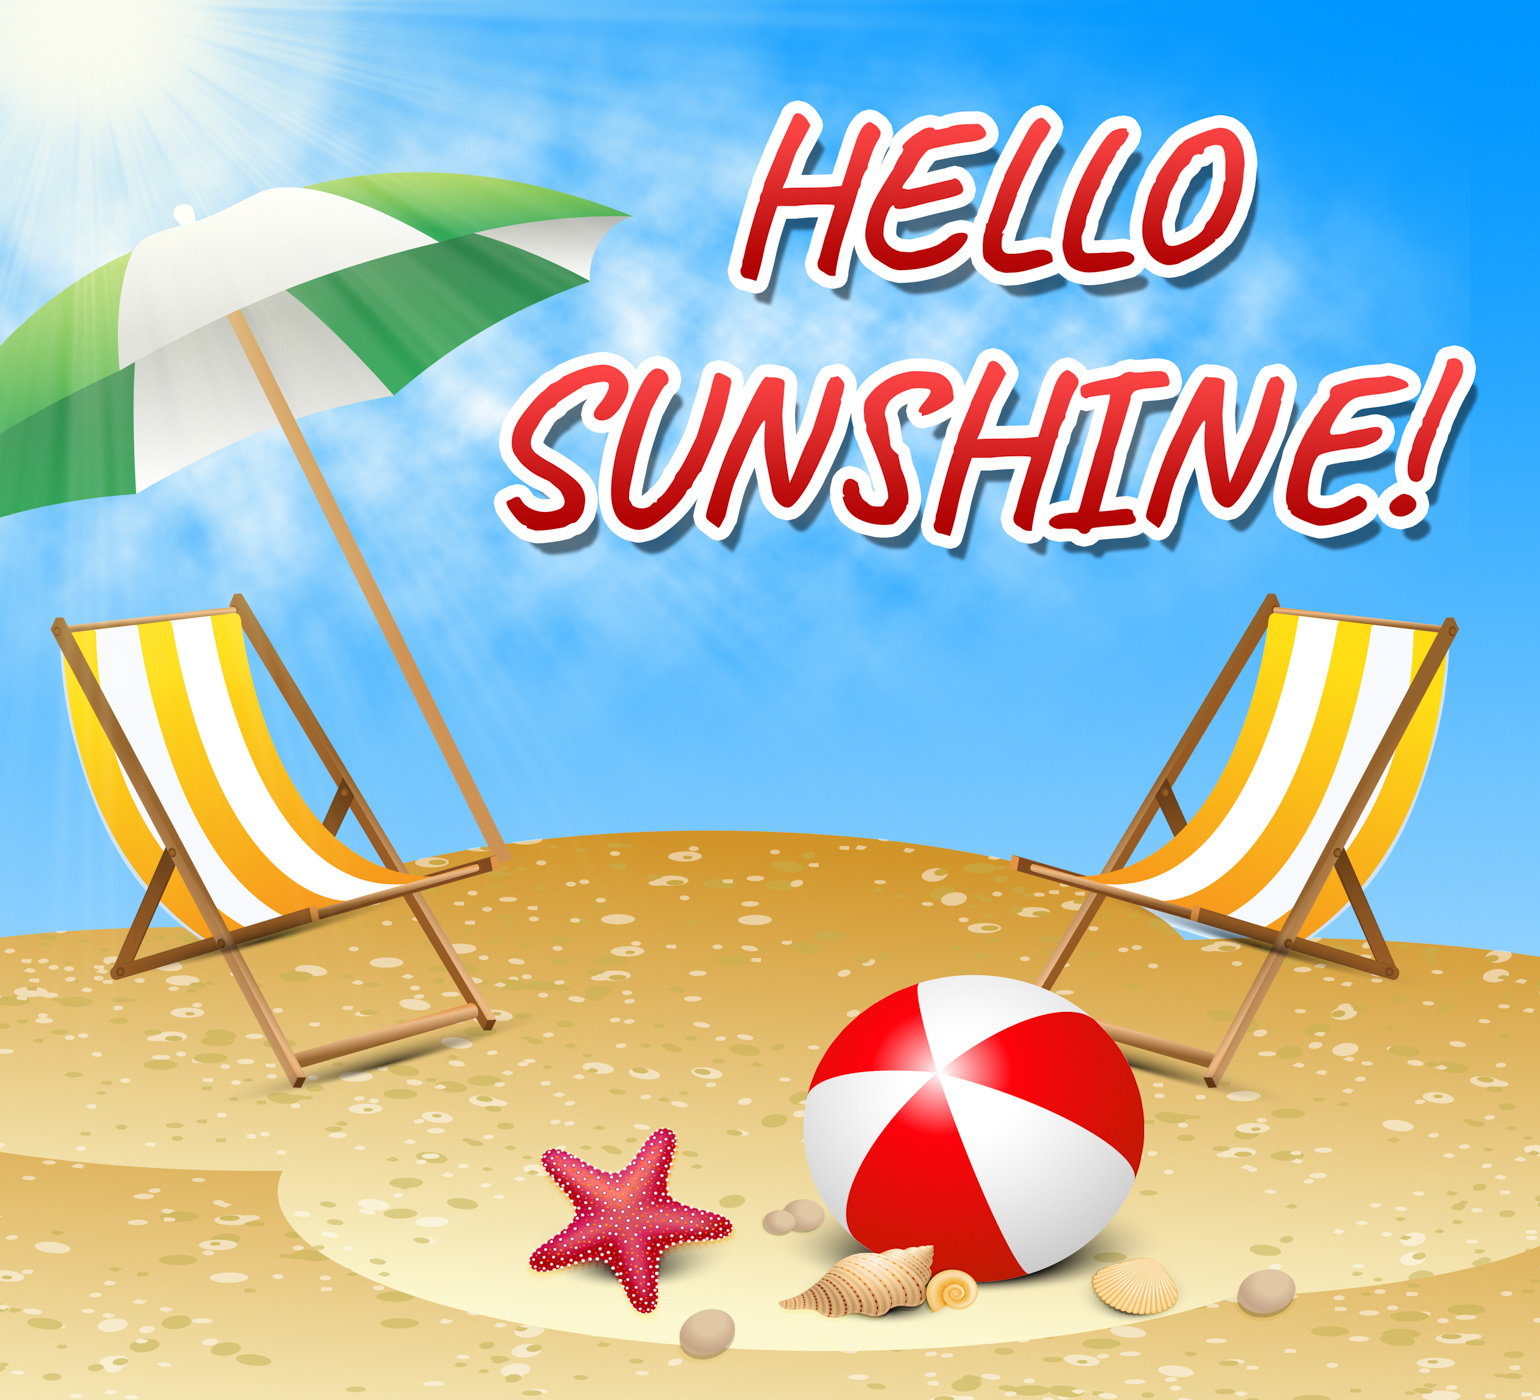 Hello Sunshine Represents Summer Time And Beaches, Sun, Summer, Summertime, Sunny, HQ Photo